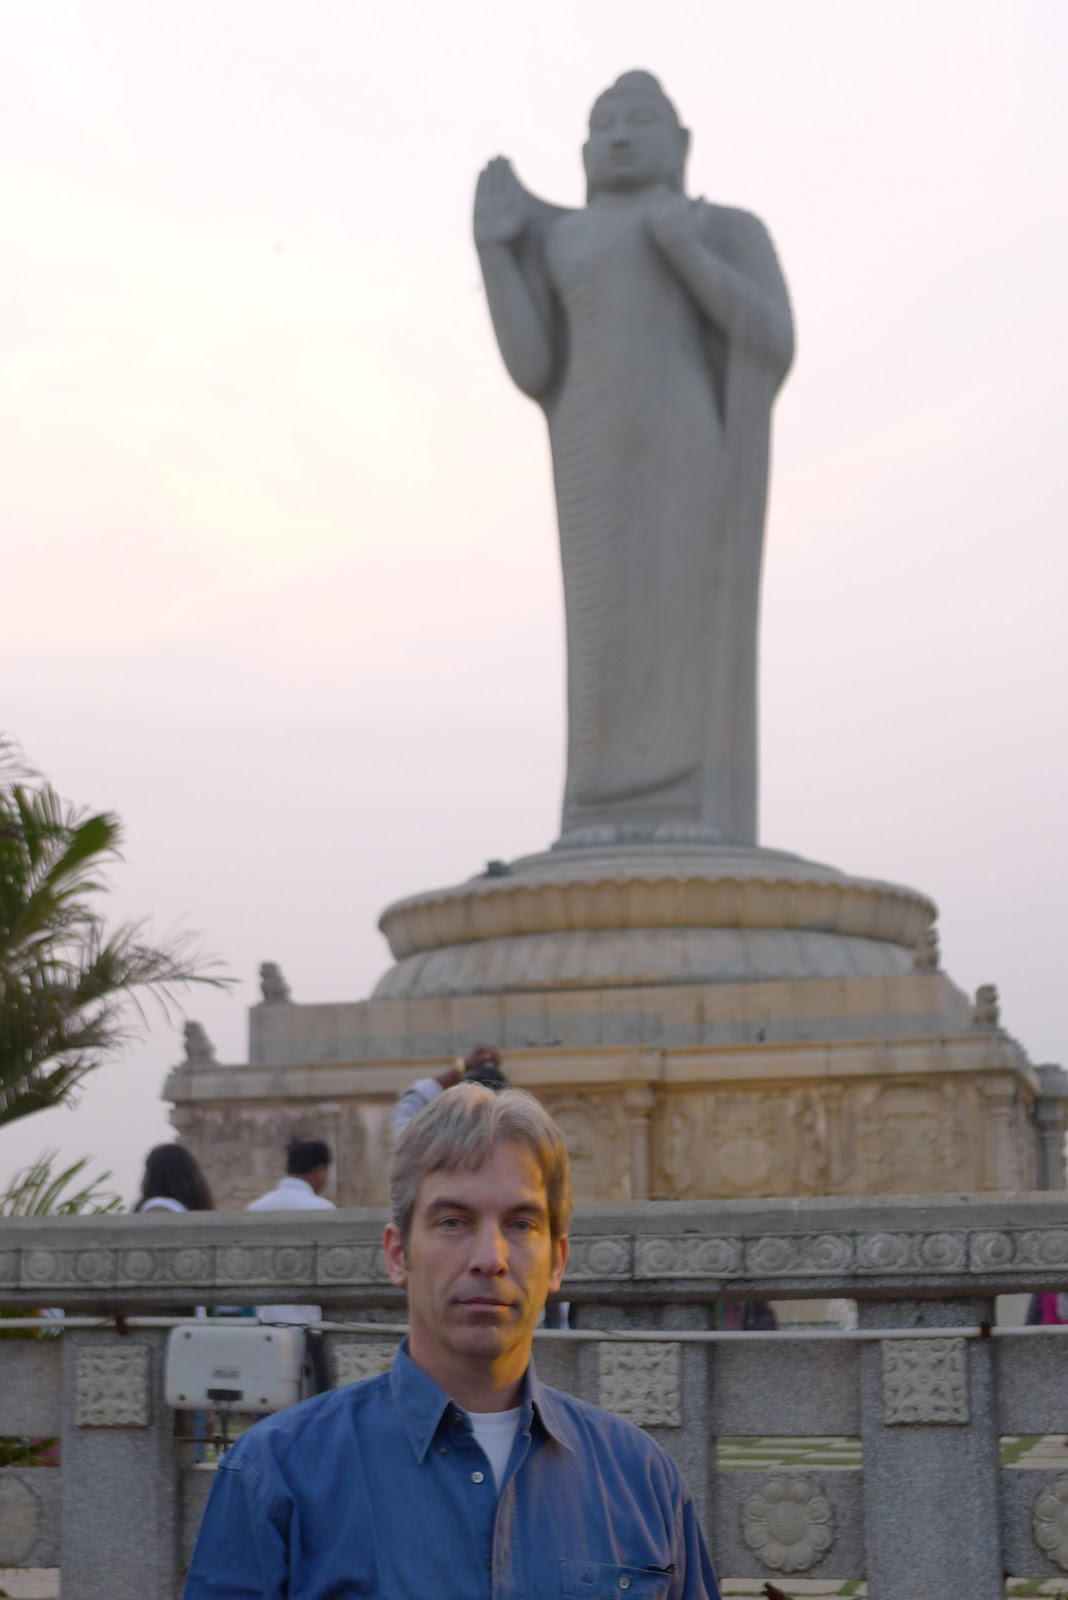 The Buddha in the center of Hyderabad's Hussain Sagar lake (world's tallest monolith of Gautama Buddha)